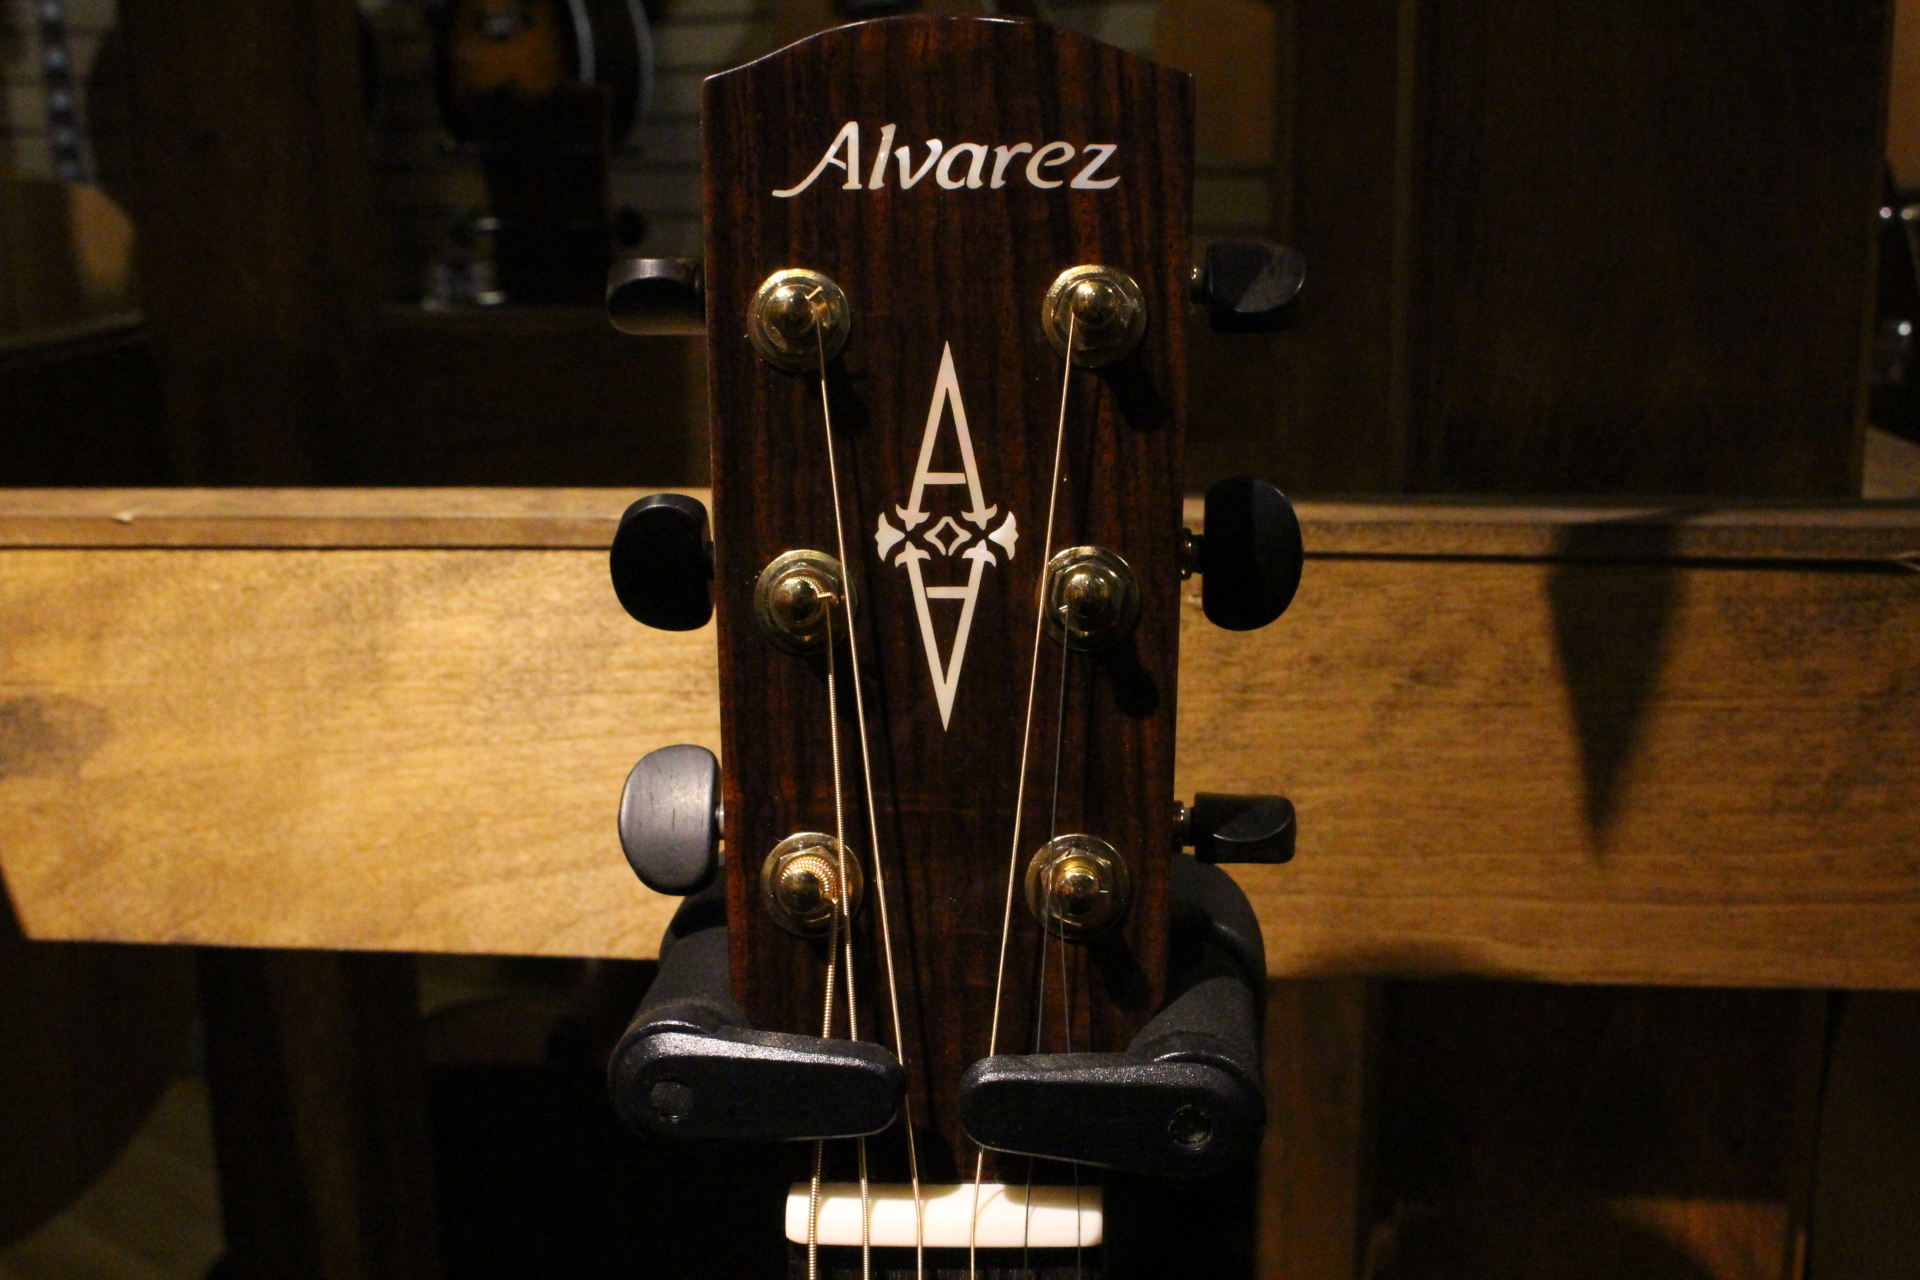 Alvarez Head Stock